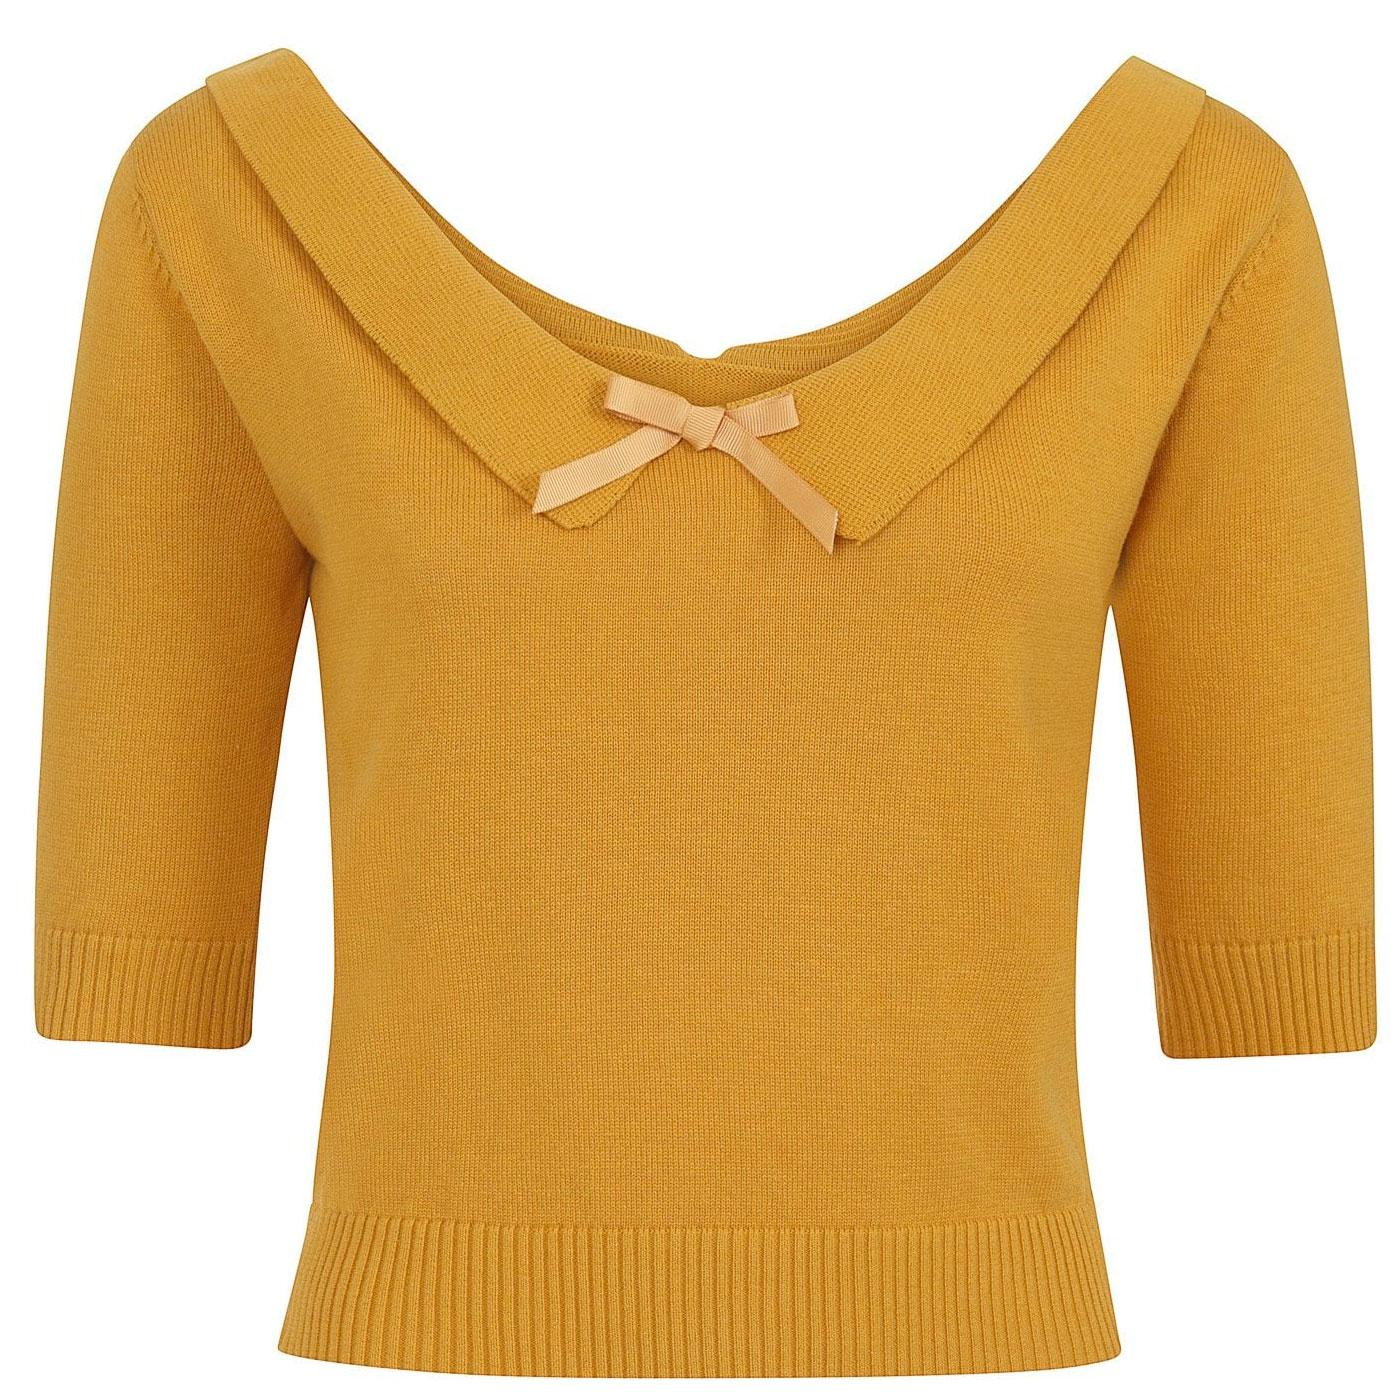 Babette COLLECTIF Retro 50s Knitted Mustard Jumper